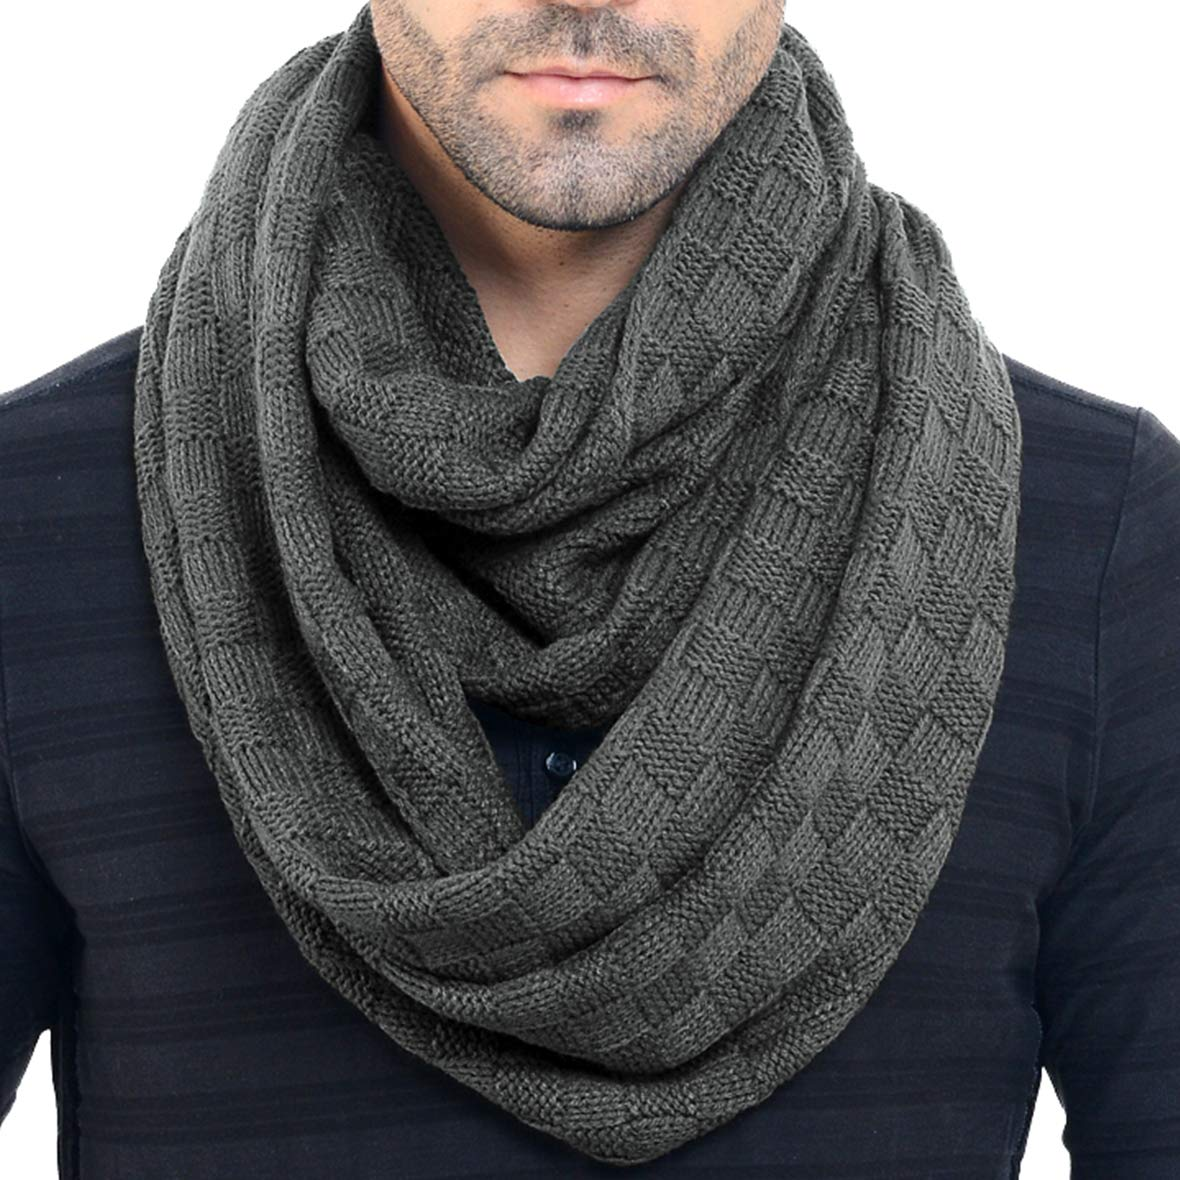 Men Knit Scarf Warm Winter Infinity Scarves E5031b